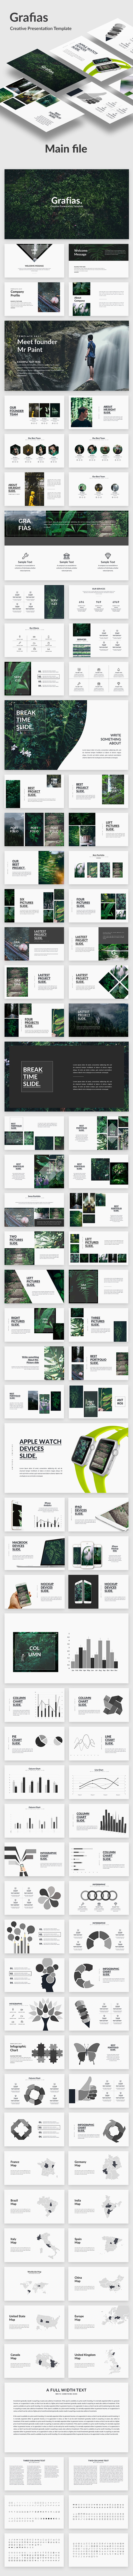 Grafias - Creative Google Slide Template - Google Slides Presentation Templates